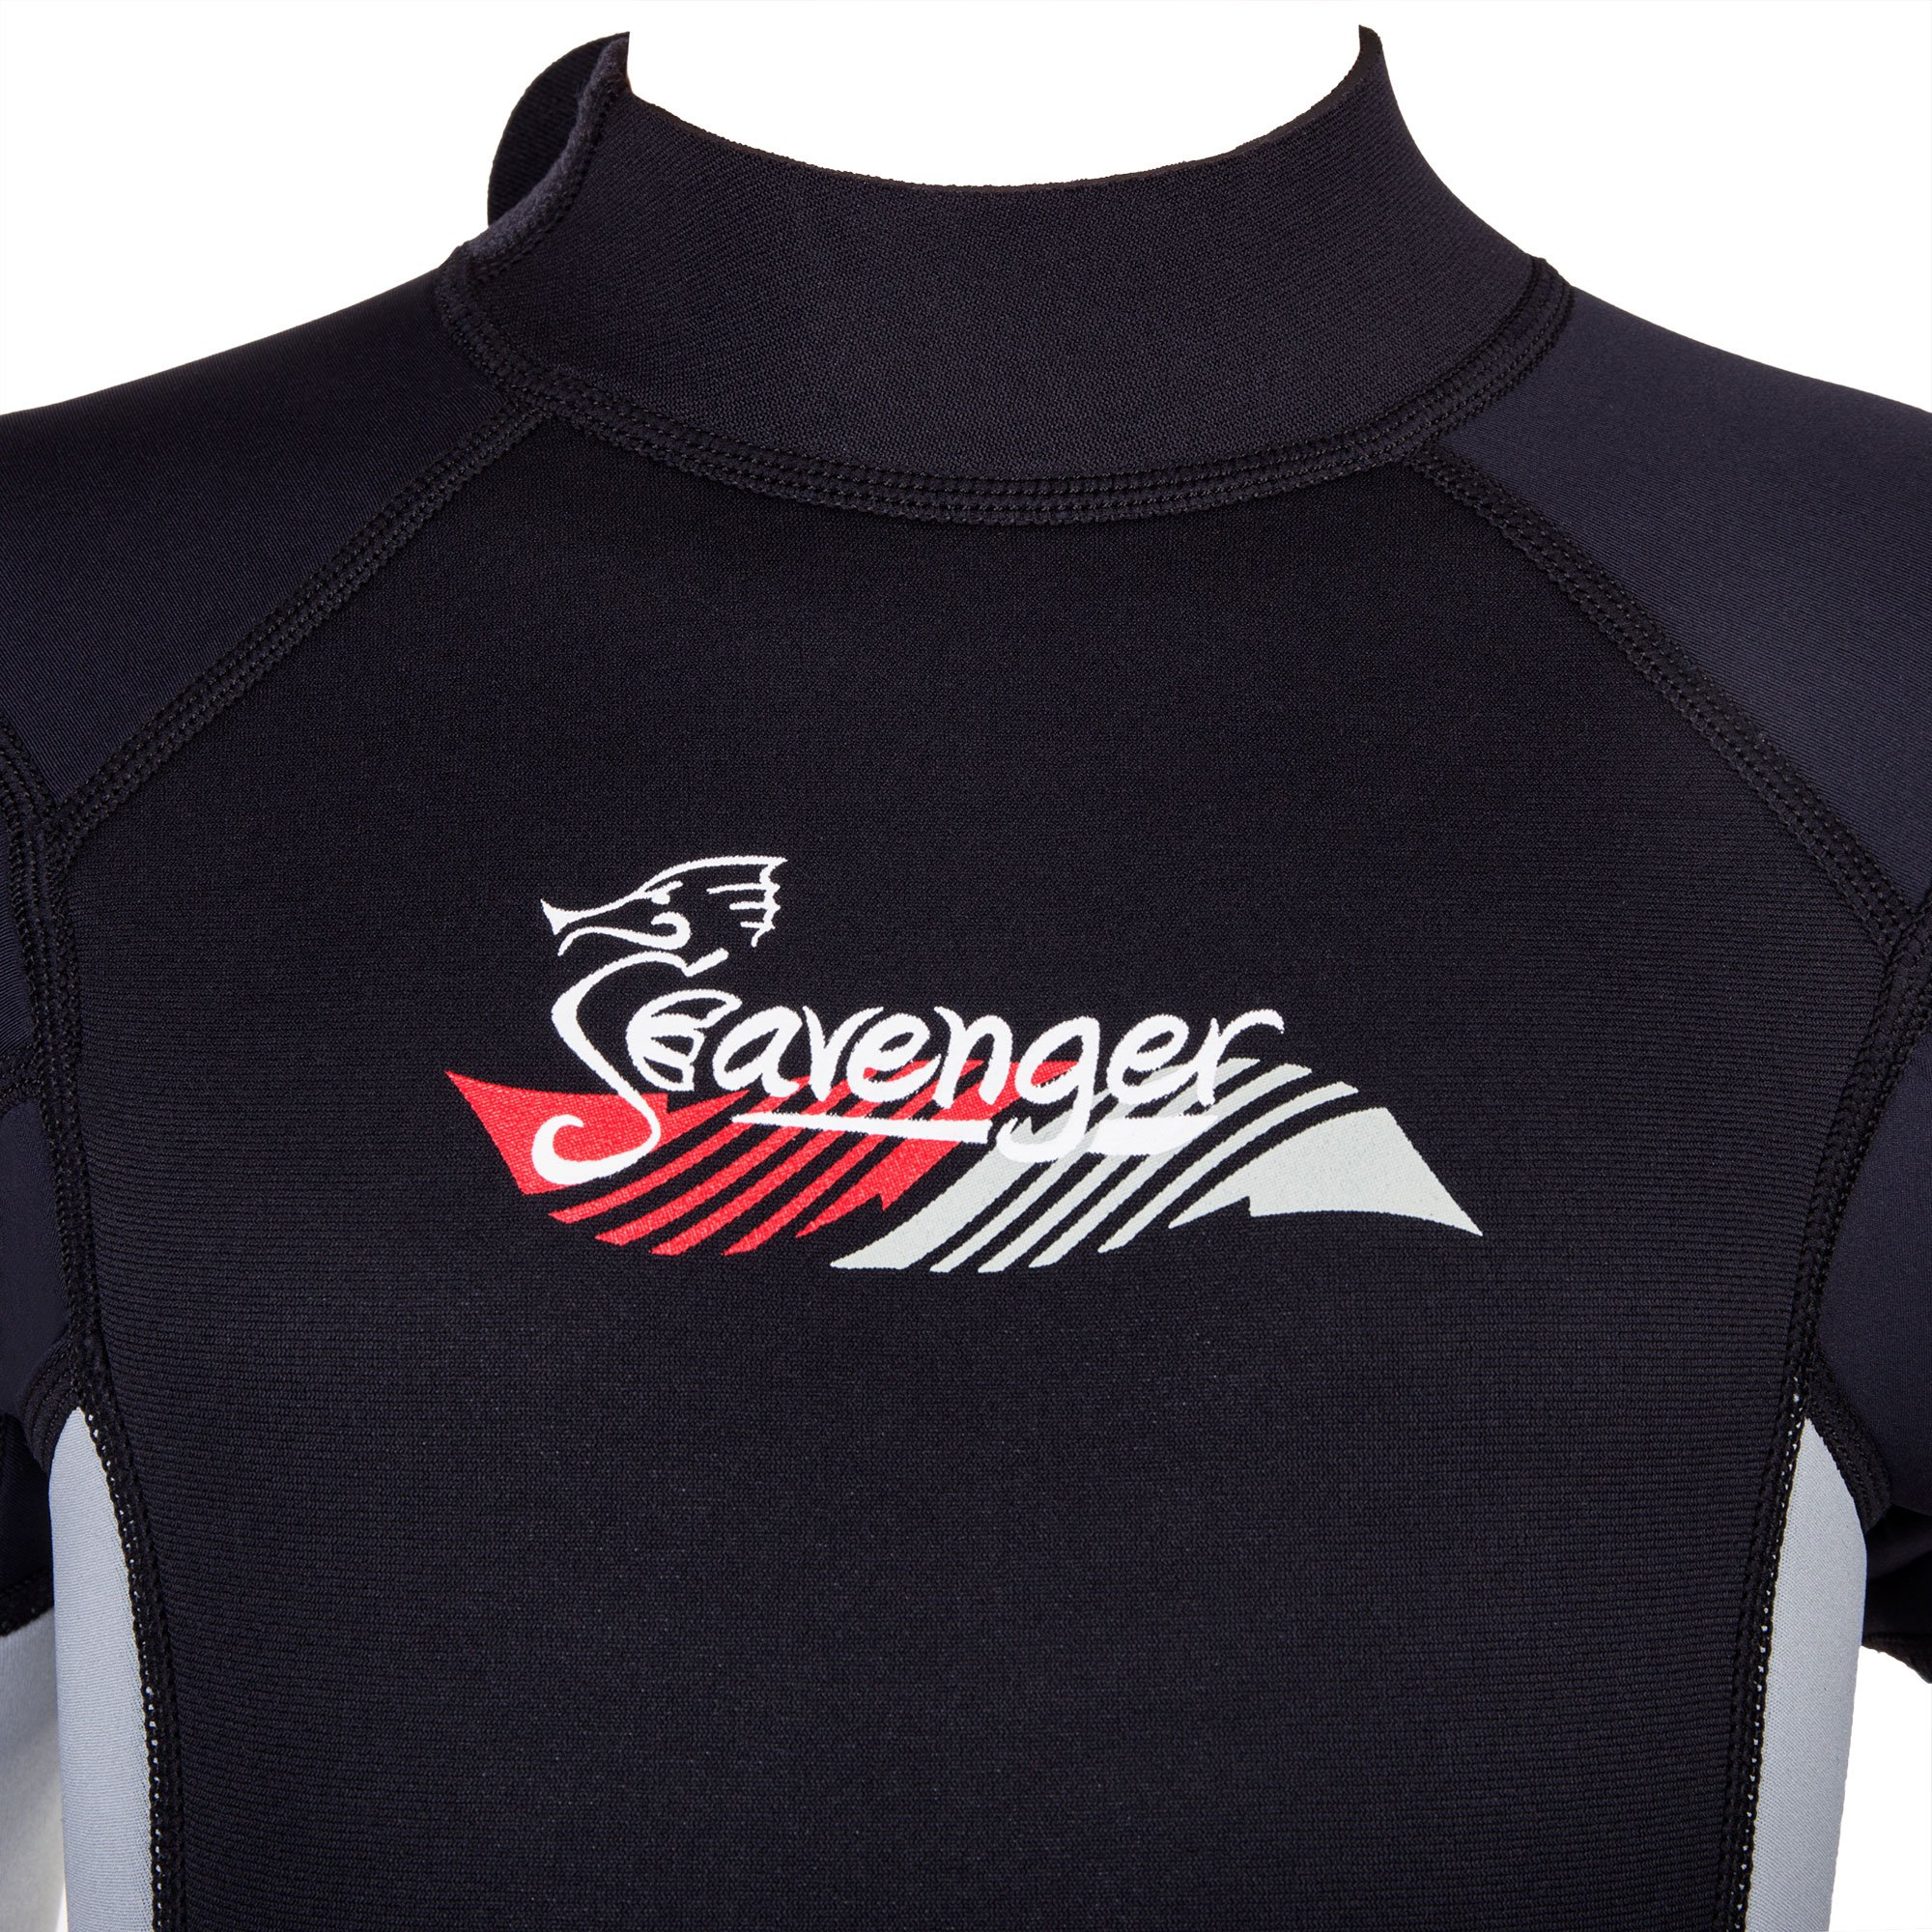 Seavenger Scout 3mm Kids Wetsuit | Full Body Neoprene Suit for Snorkeling, Swimming, Diving (Fire Red, 10) by Seavenger (Image #2)